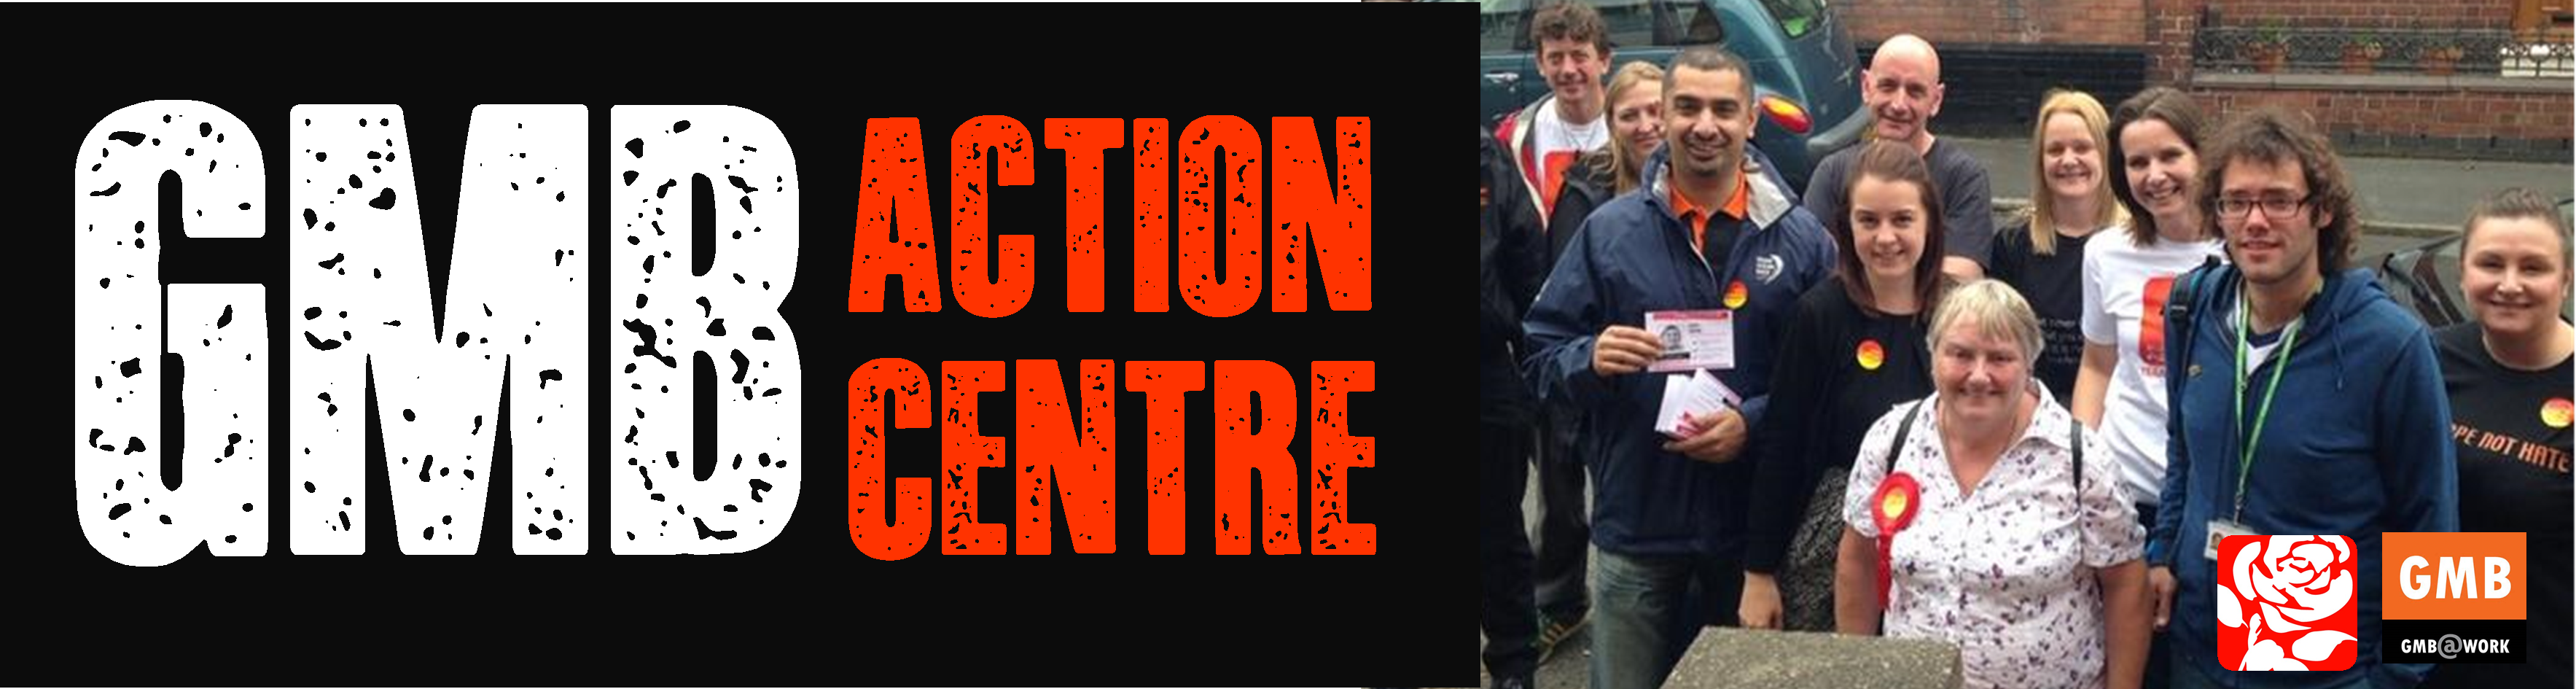 GMB_action_centre.png